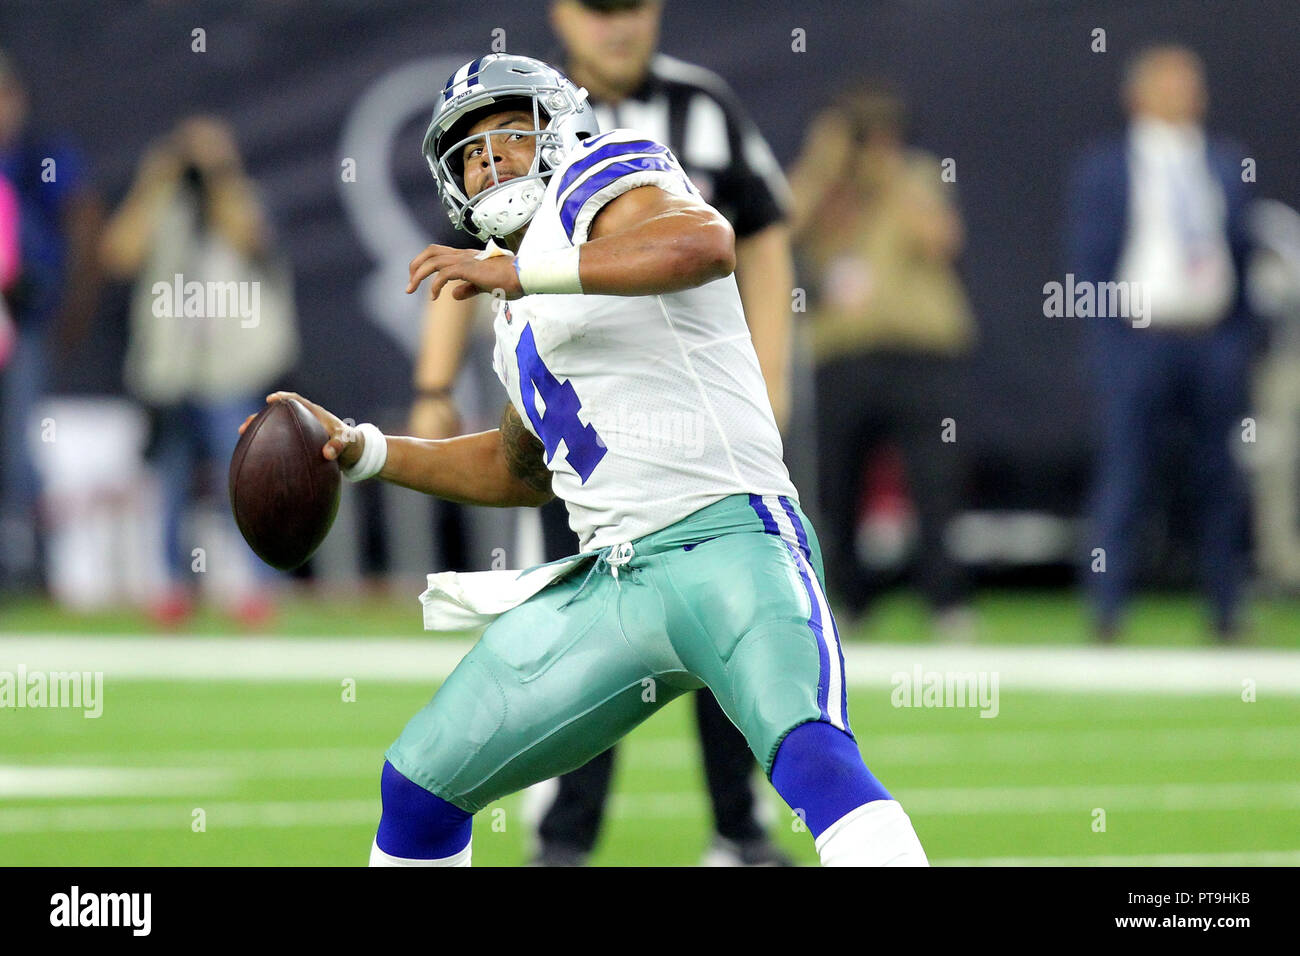 Houston, Texas, USA. 7th Oct, 2018. Dallas Cowboys quarterback Dak Prescott (4) reaches back to make a pass into the end zone on the final play of the fourth quarter of the NFL regular season game between the Houston Texans and the Dallas Cowboys at NRG Stadium in Houston, TX on October 7, 2018 Credit: Erik Williams/ZUMA Wire/Alamy Live News - Stock Image